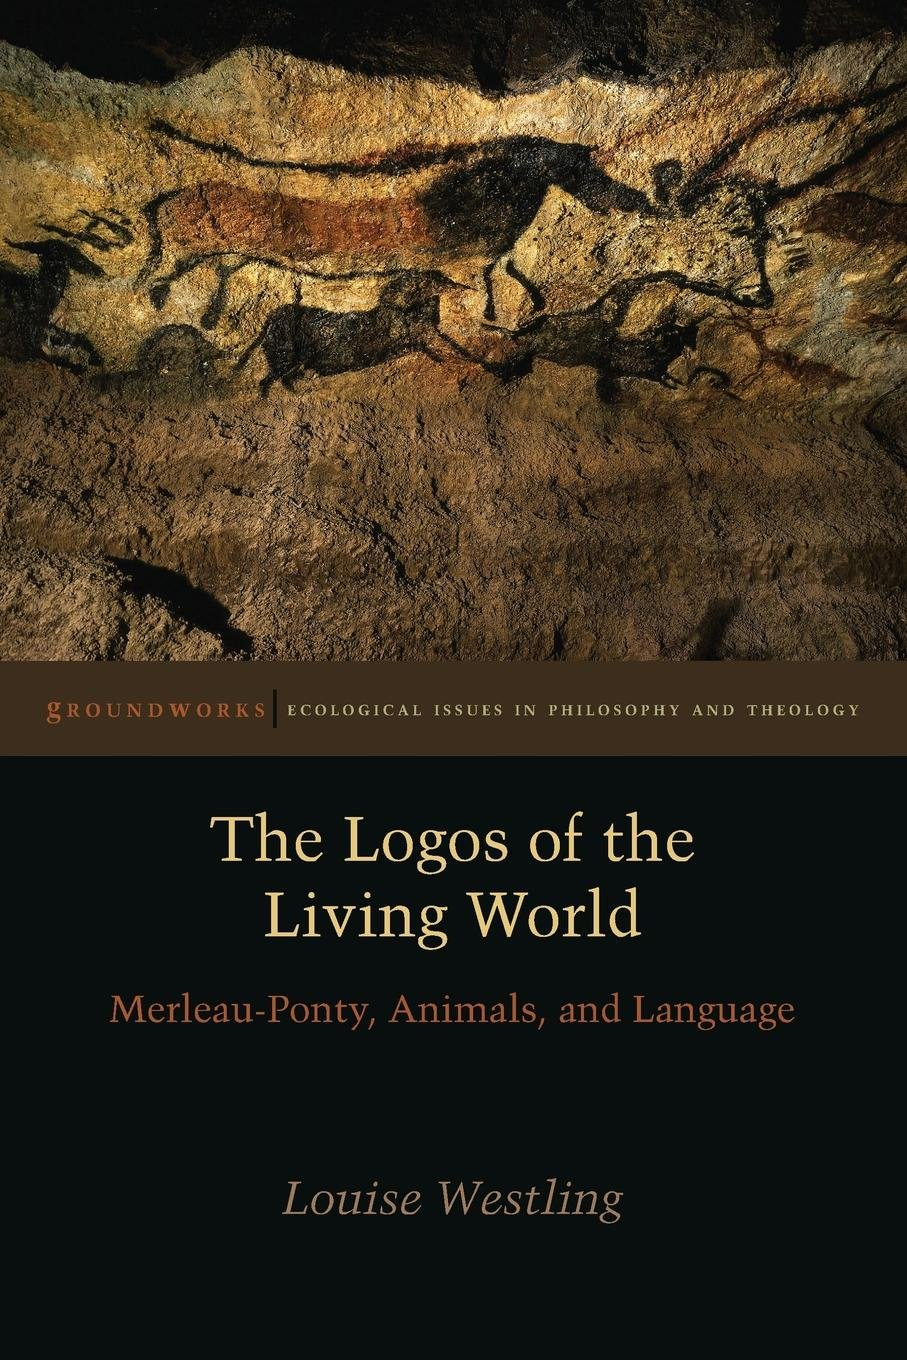 The Logos of the Living World: Merleau-Ponty, Animals, and Language (Groundworks: Ecological Issues in Philosophy and Theology) by Fordham University Press